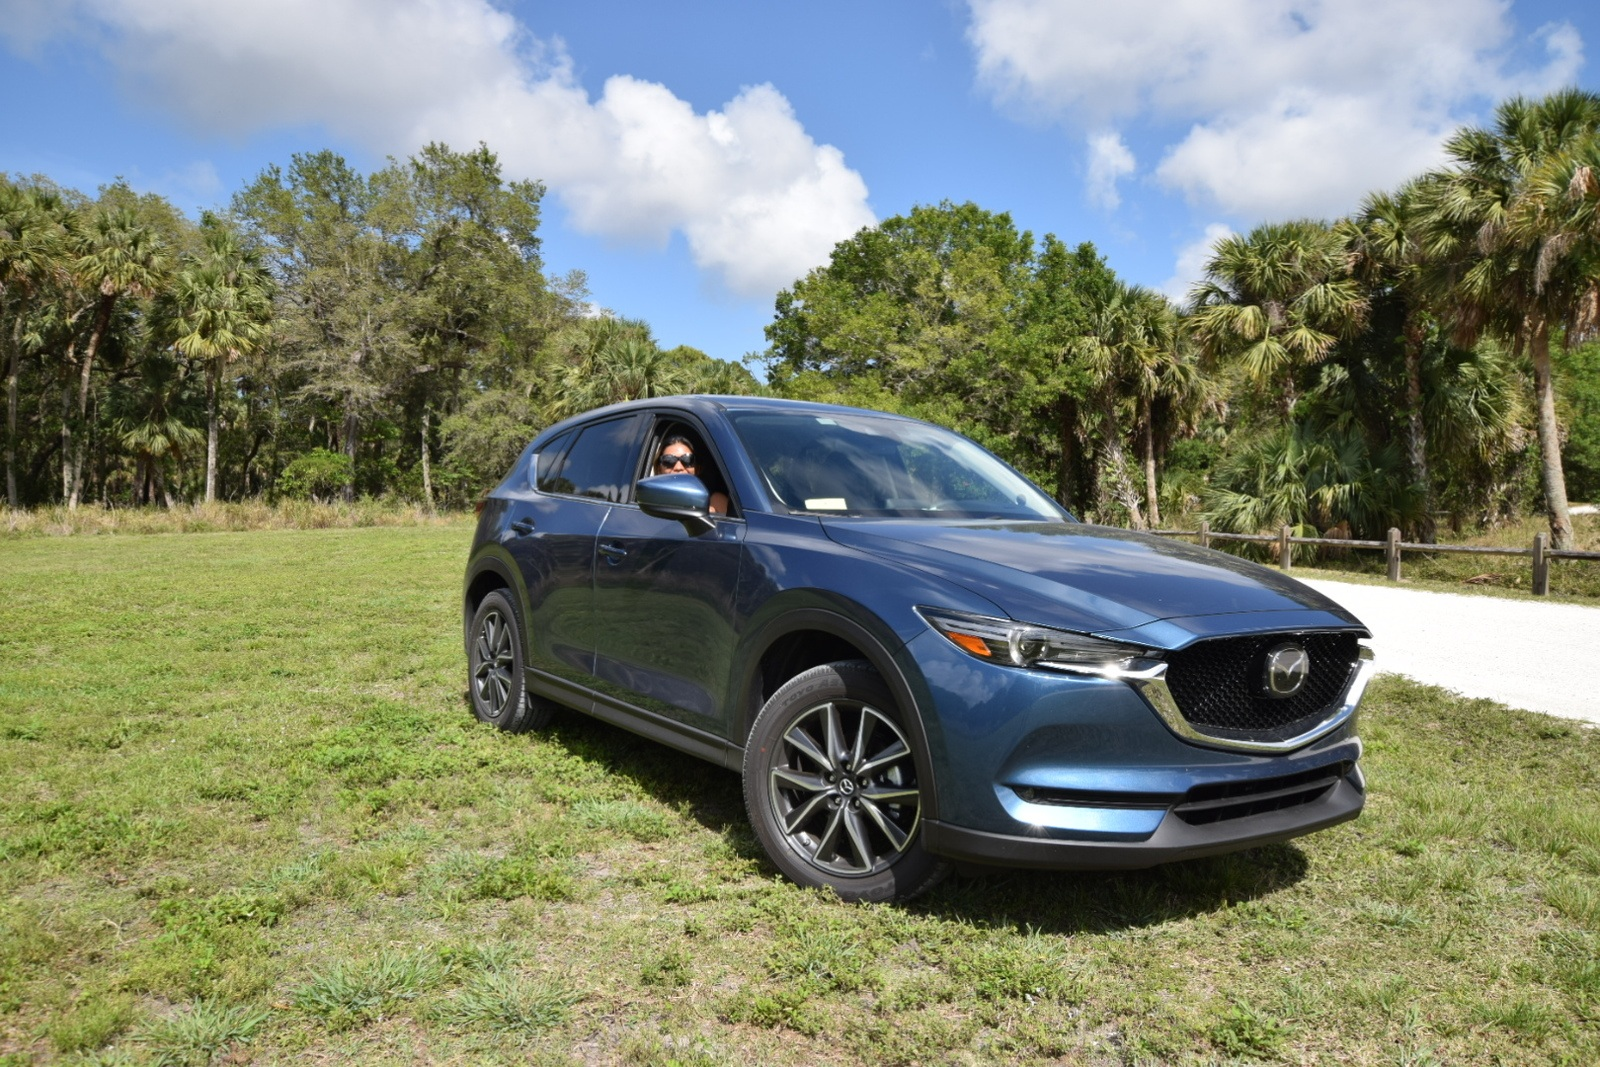 2017 Mazda CX-5 If It's Not Broke Make It Even Better Full Body